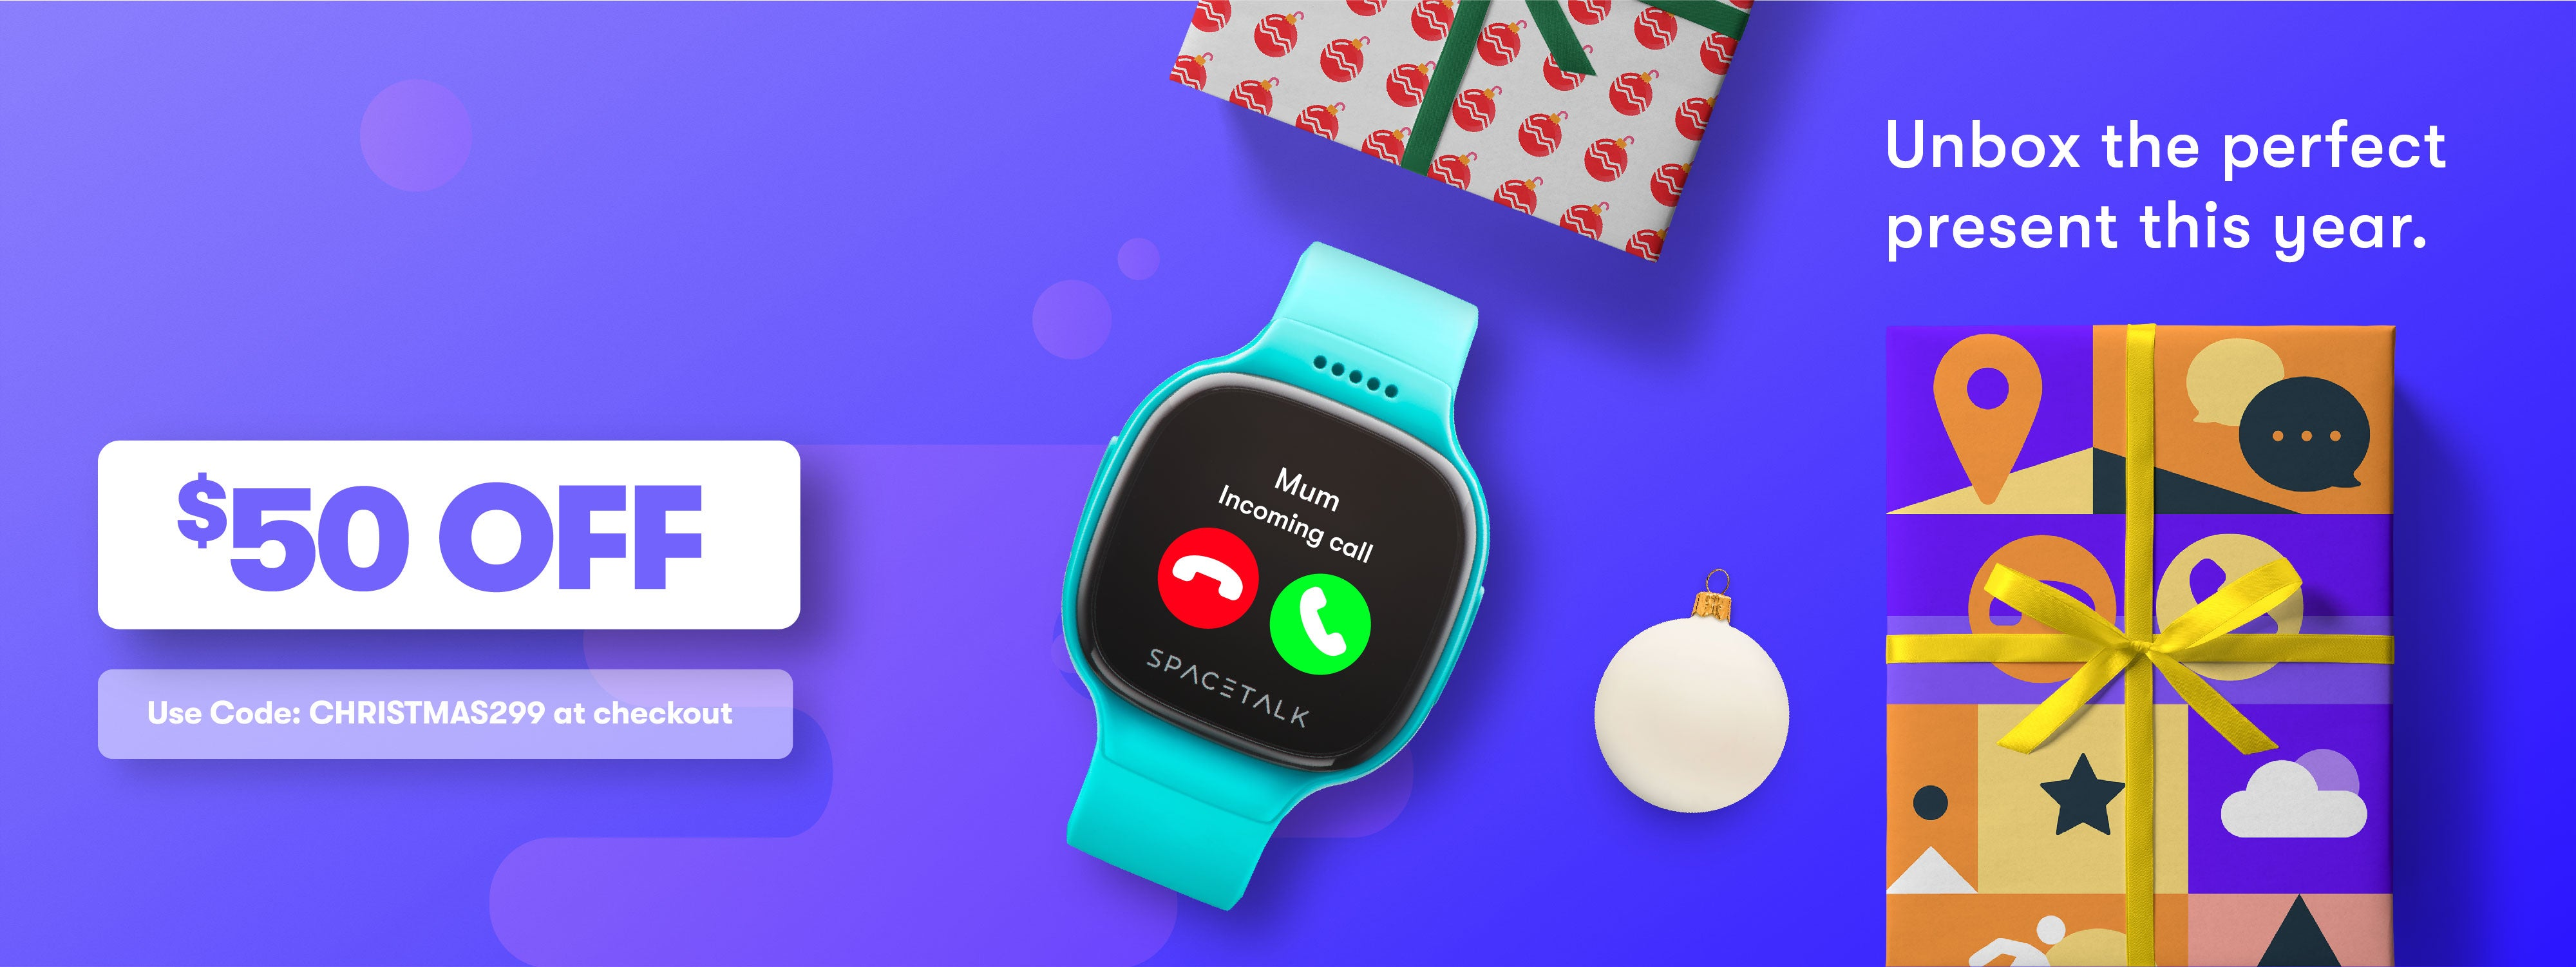 SPACETALK Sale On Now - $50 off! Smart Watch, Phone & GPS device